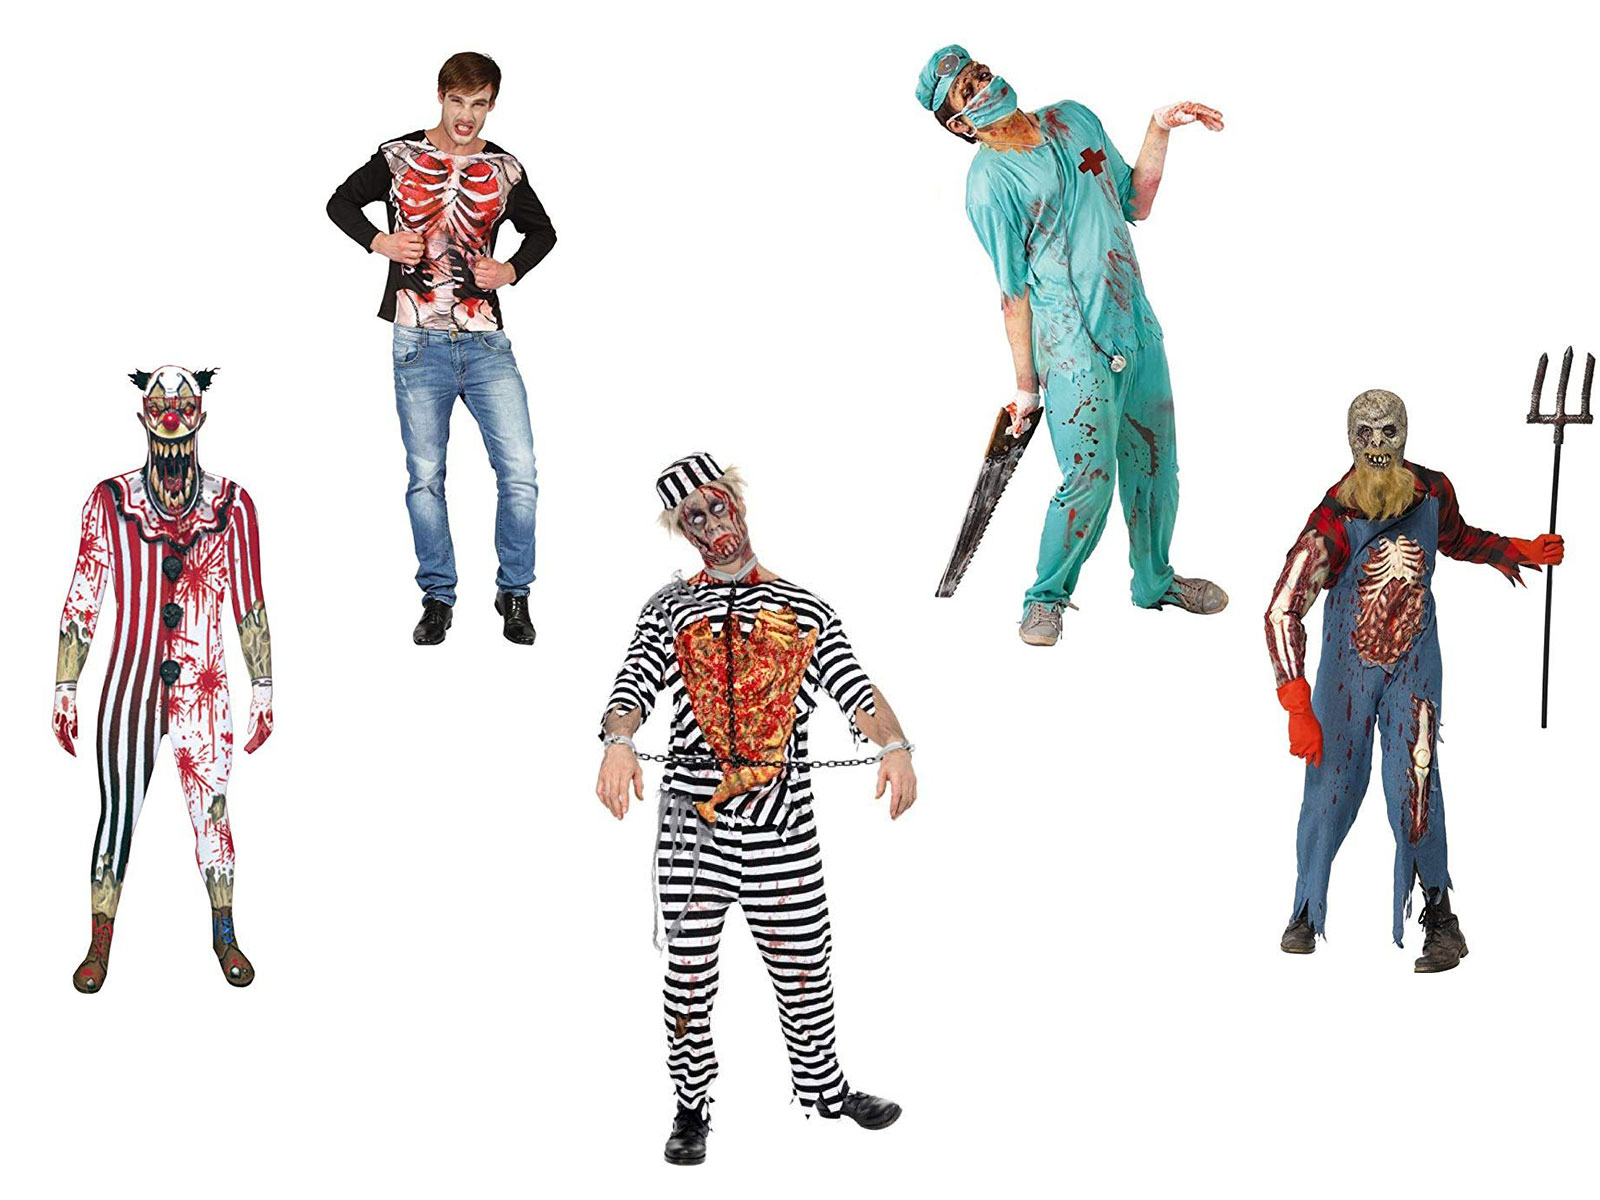 25-Best-Yet-Scary-Halloween-Costume-Ideas-For-Boys-Men-2019-F